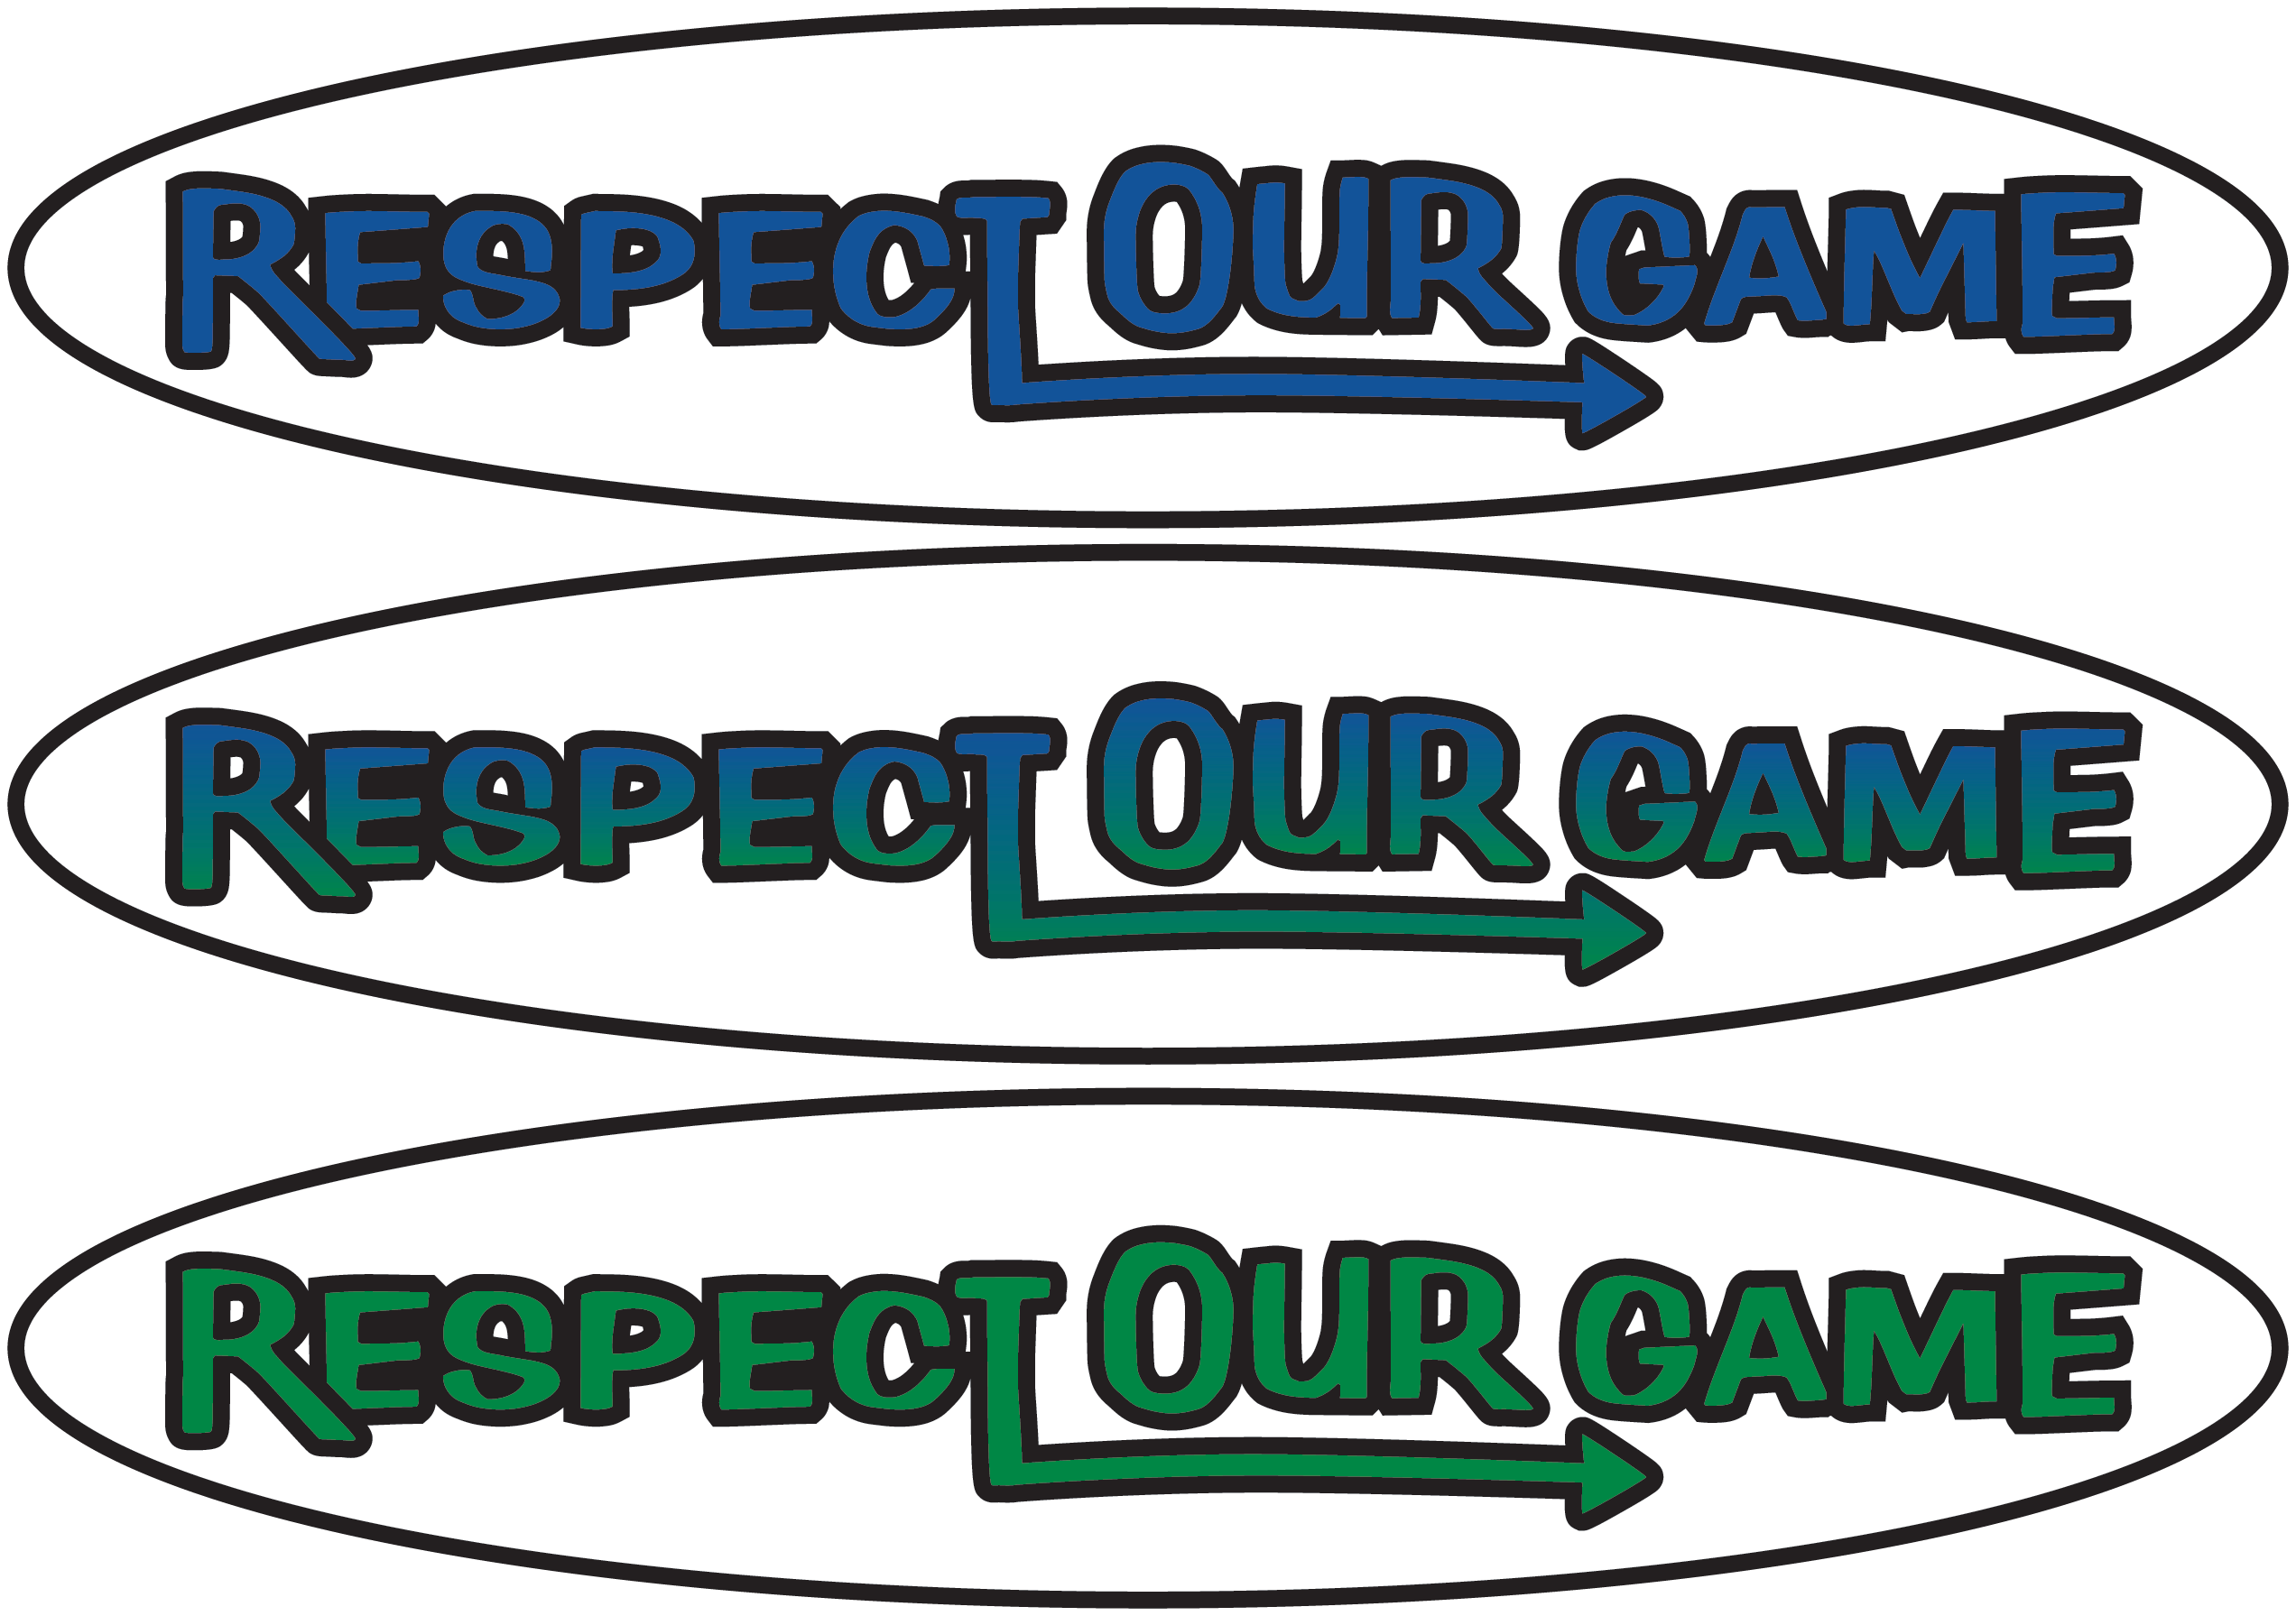 Logo Design by 4cCameron - Entry No. 18 in the Logo Design Contest Respect our game - North Van Minor Hockey Logo Design.